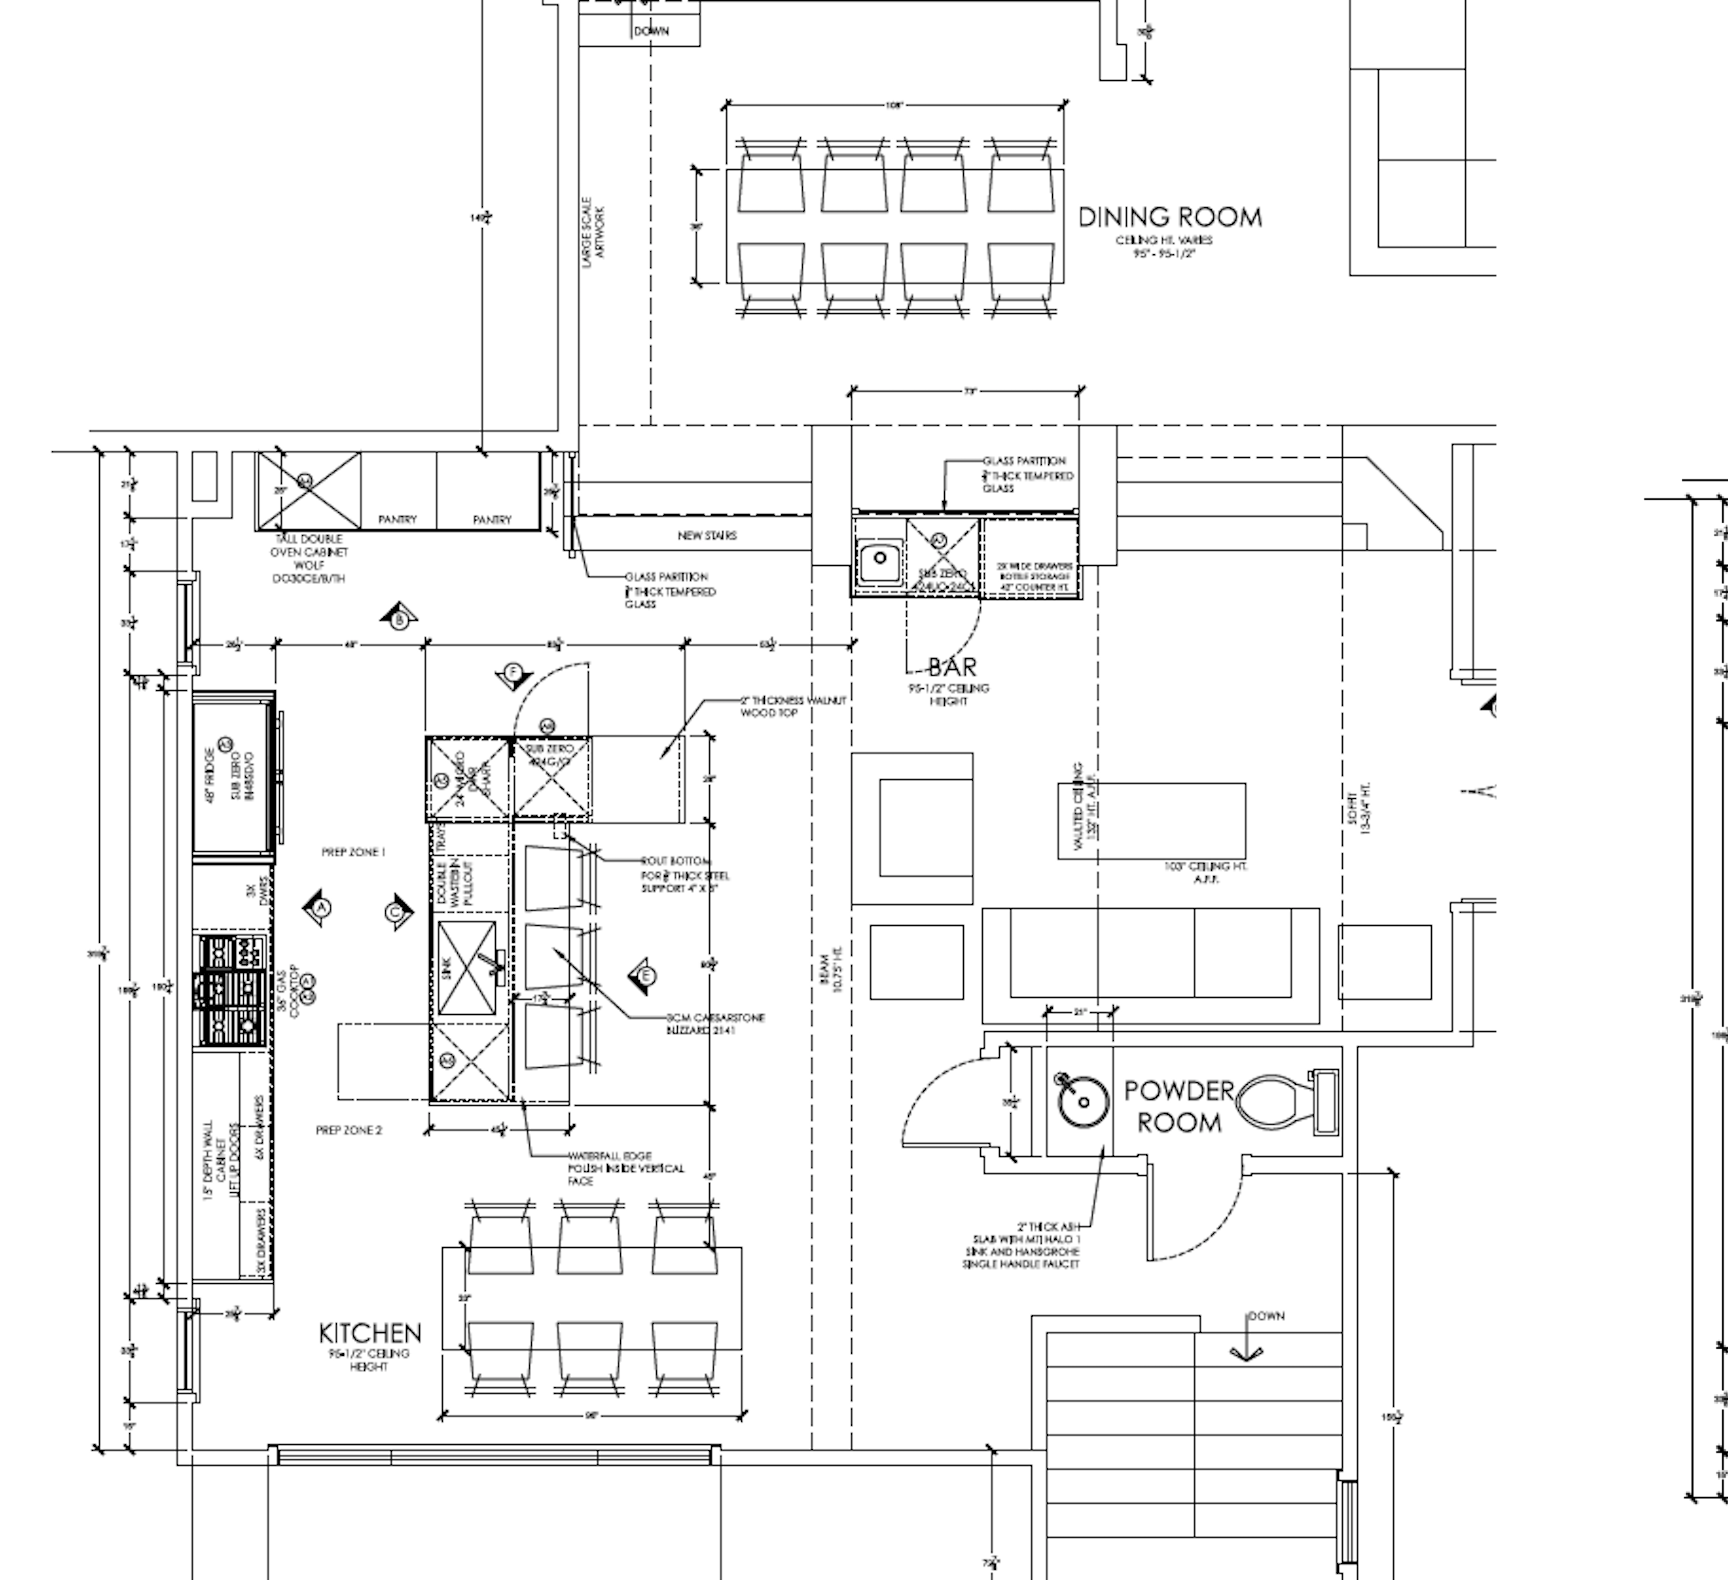 PROPOSED NEW FLOORPLAN